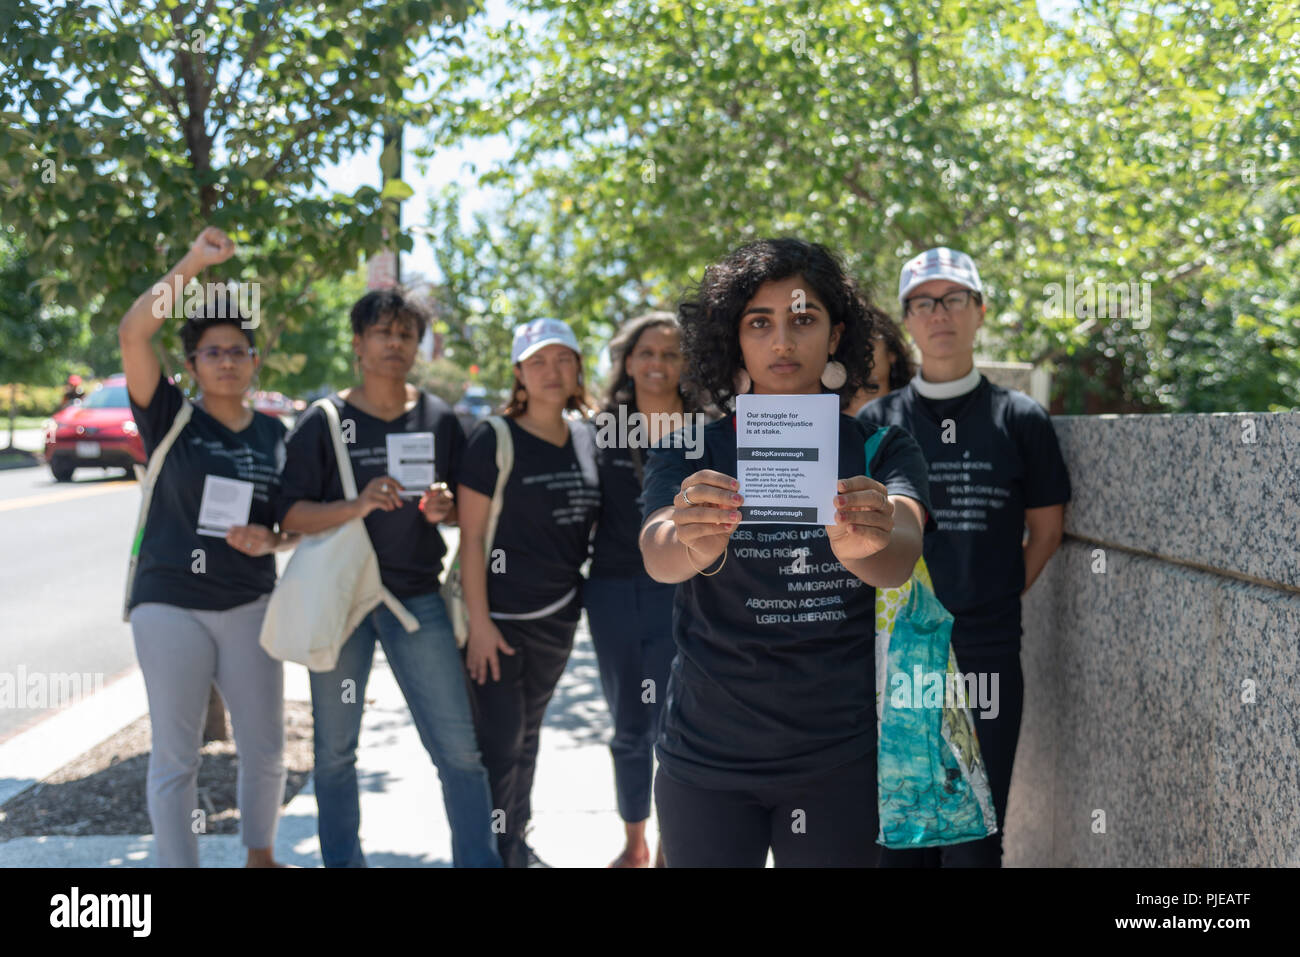 Washington DC / August 23, 2018: Women's rights group protests the nomination of Kavanaugh to be Supreme Court Justice - Stock Image